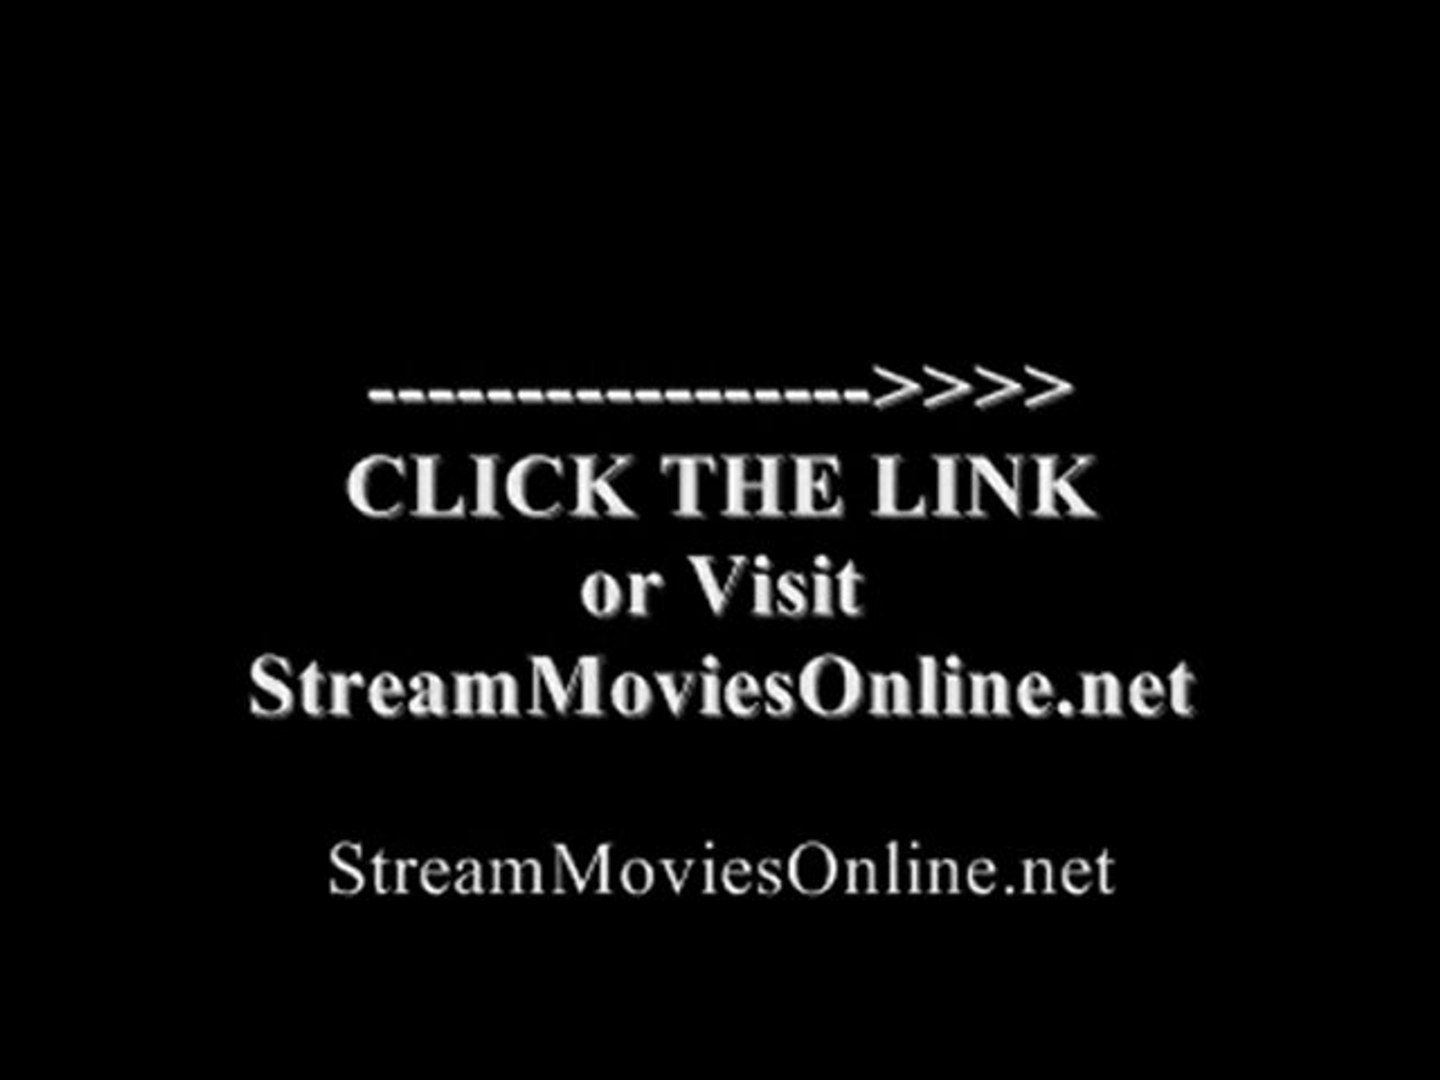 watch movies, stream movies, full movie, download movie, The